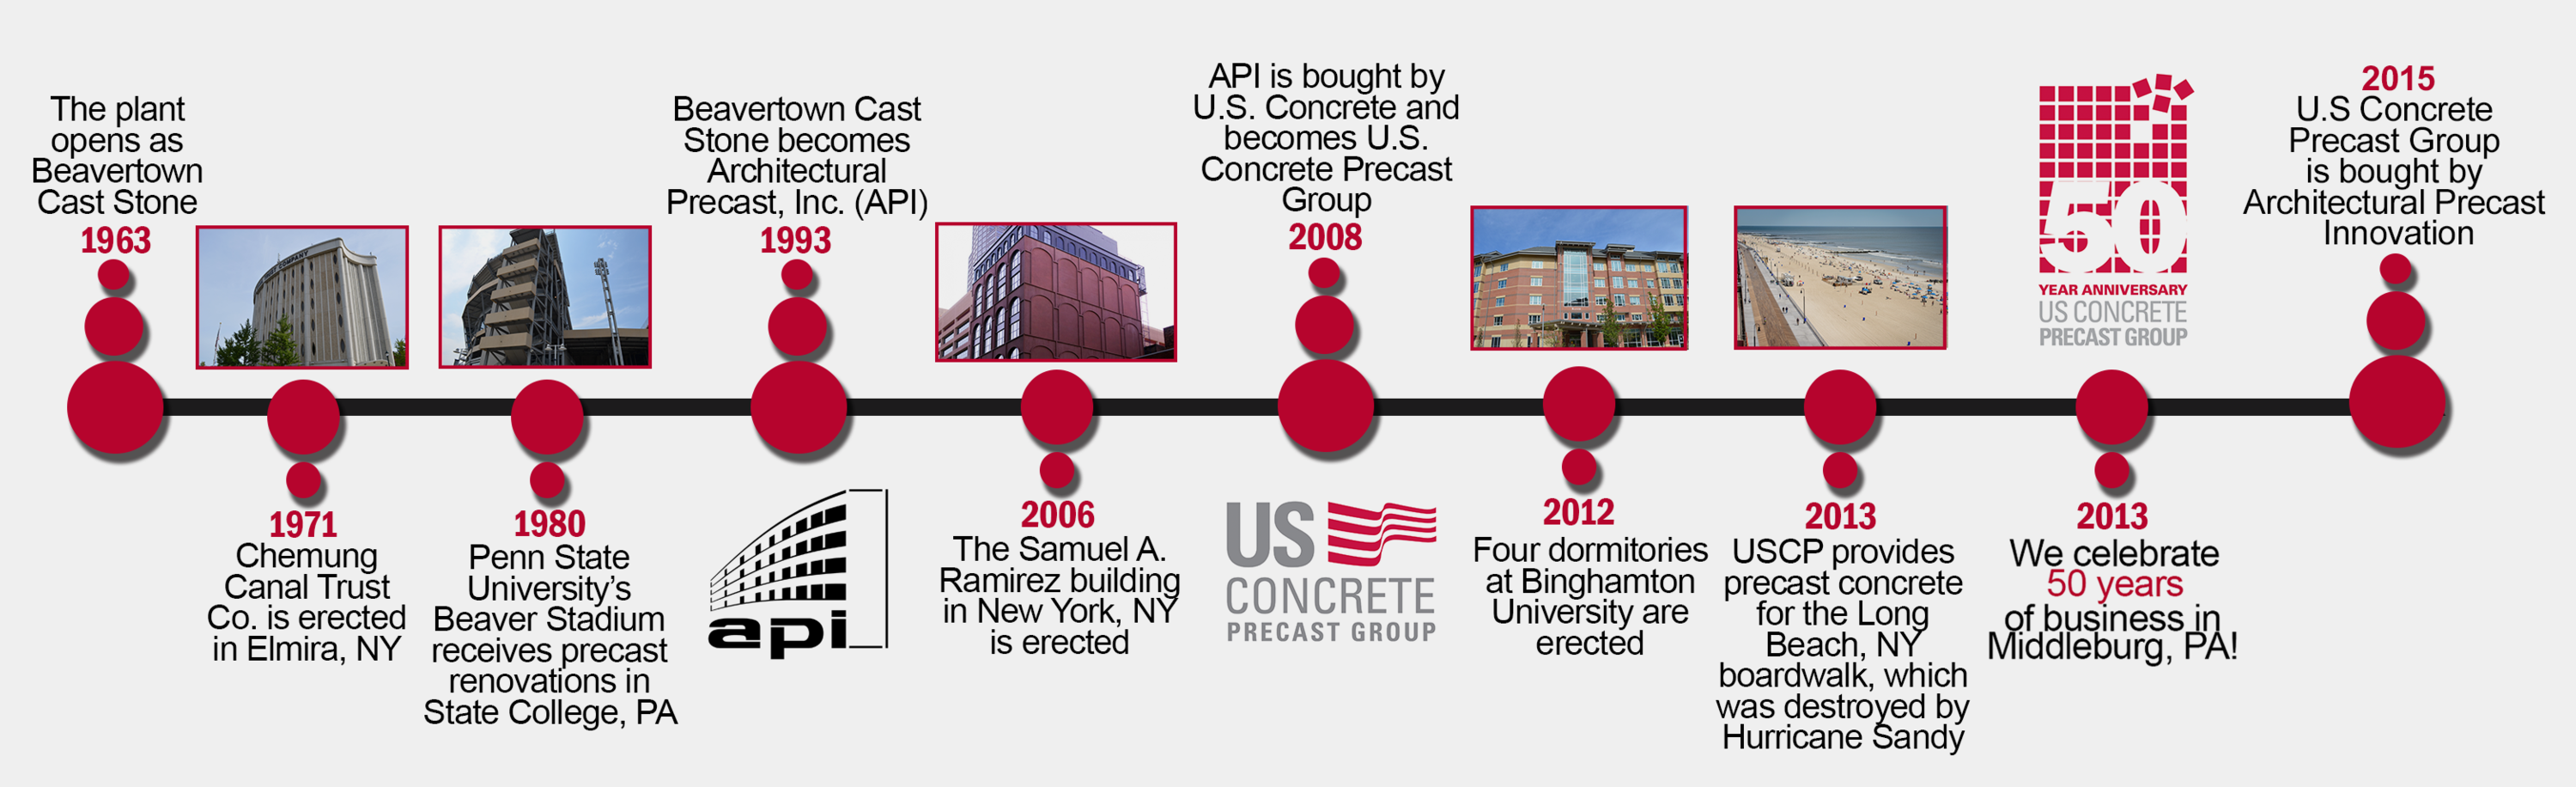 Architectural Precast Innovations Timeline